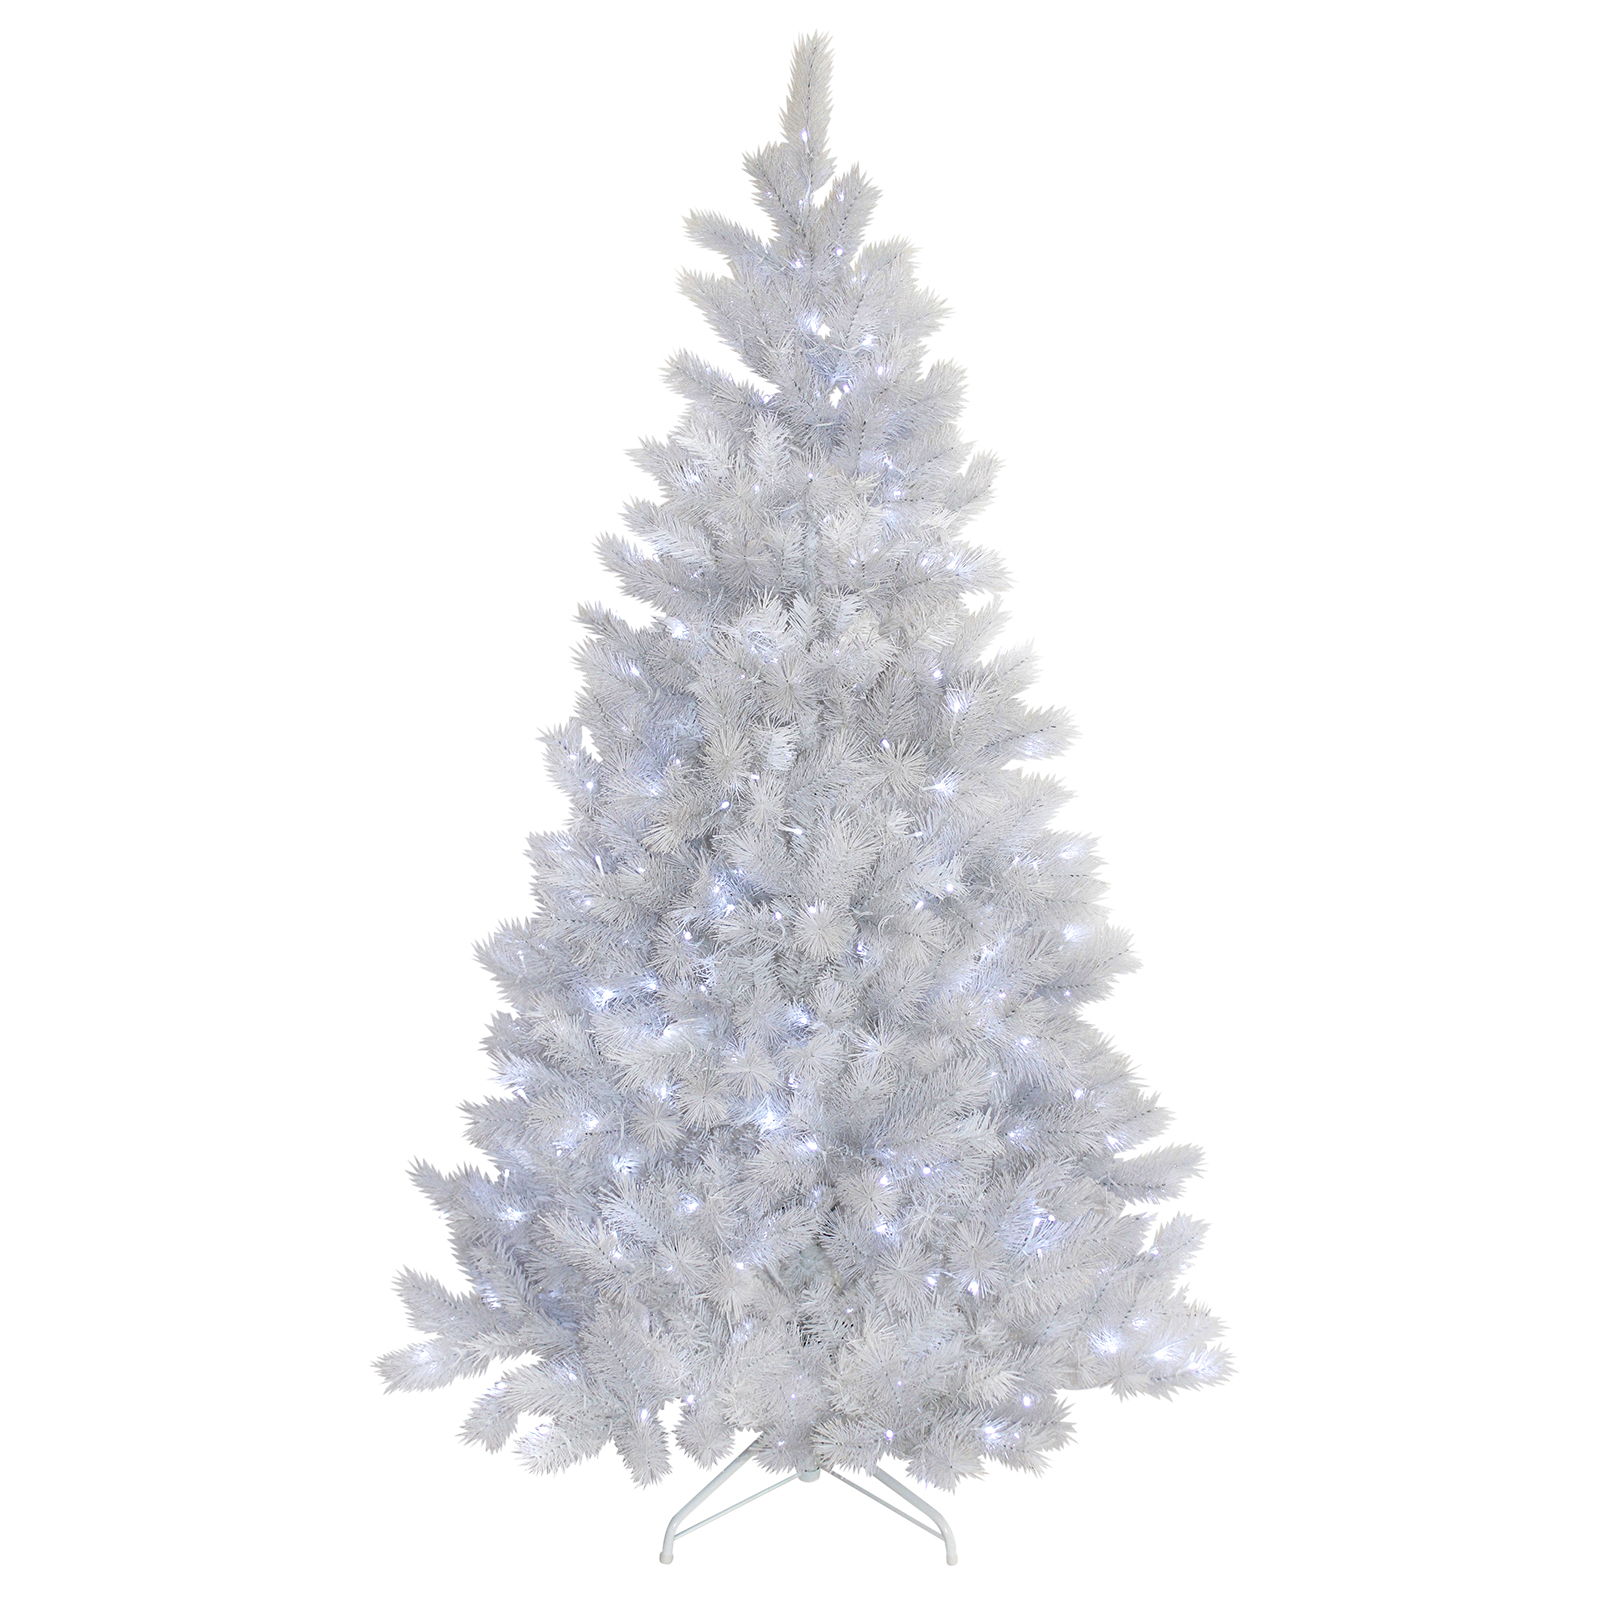 Ft artificial christmas tree white with glitter tips